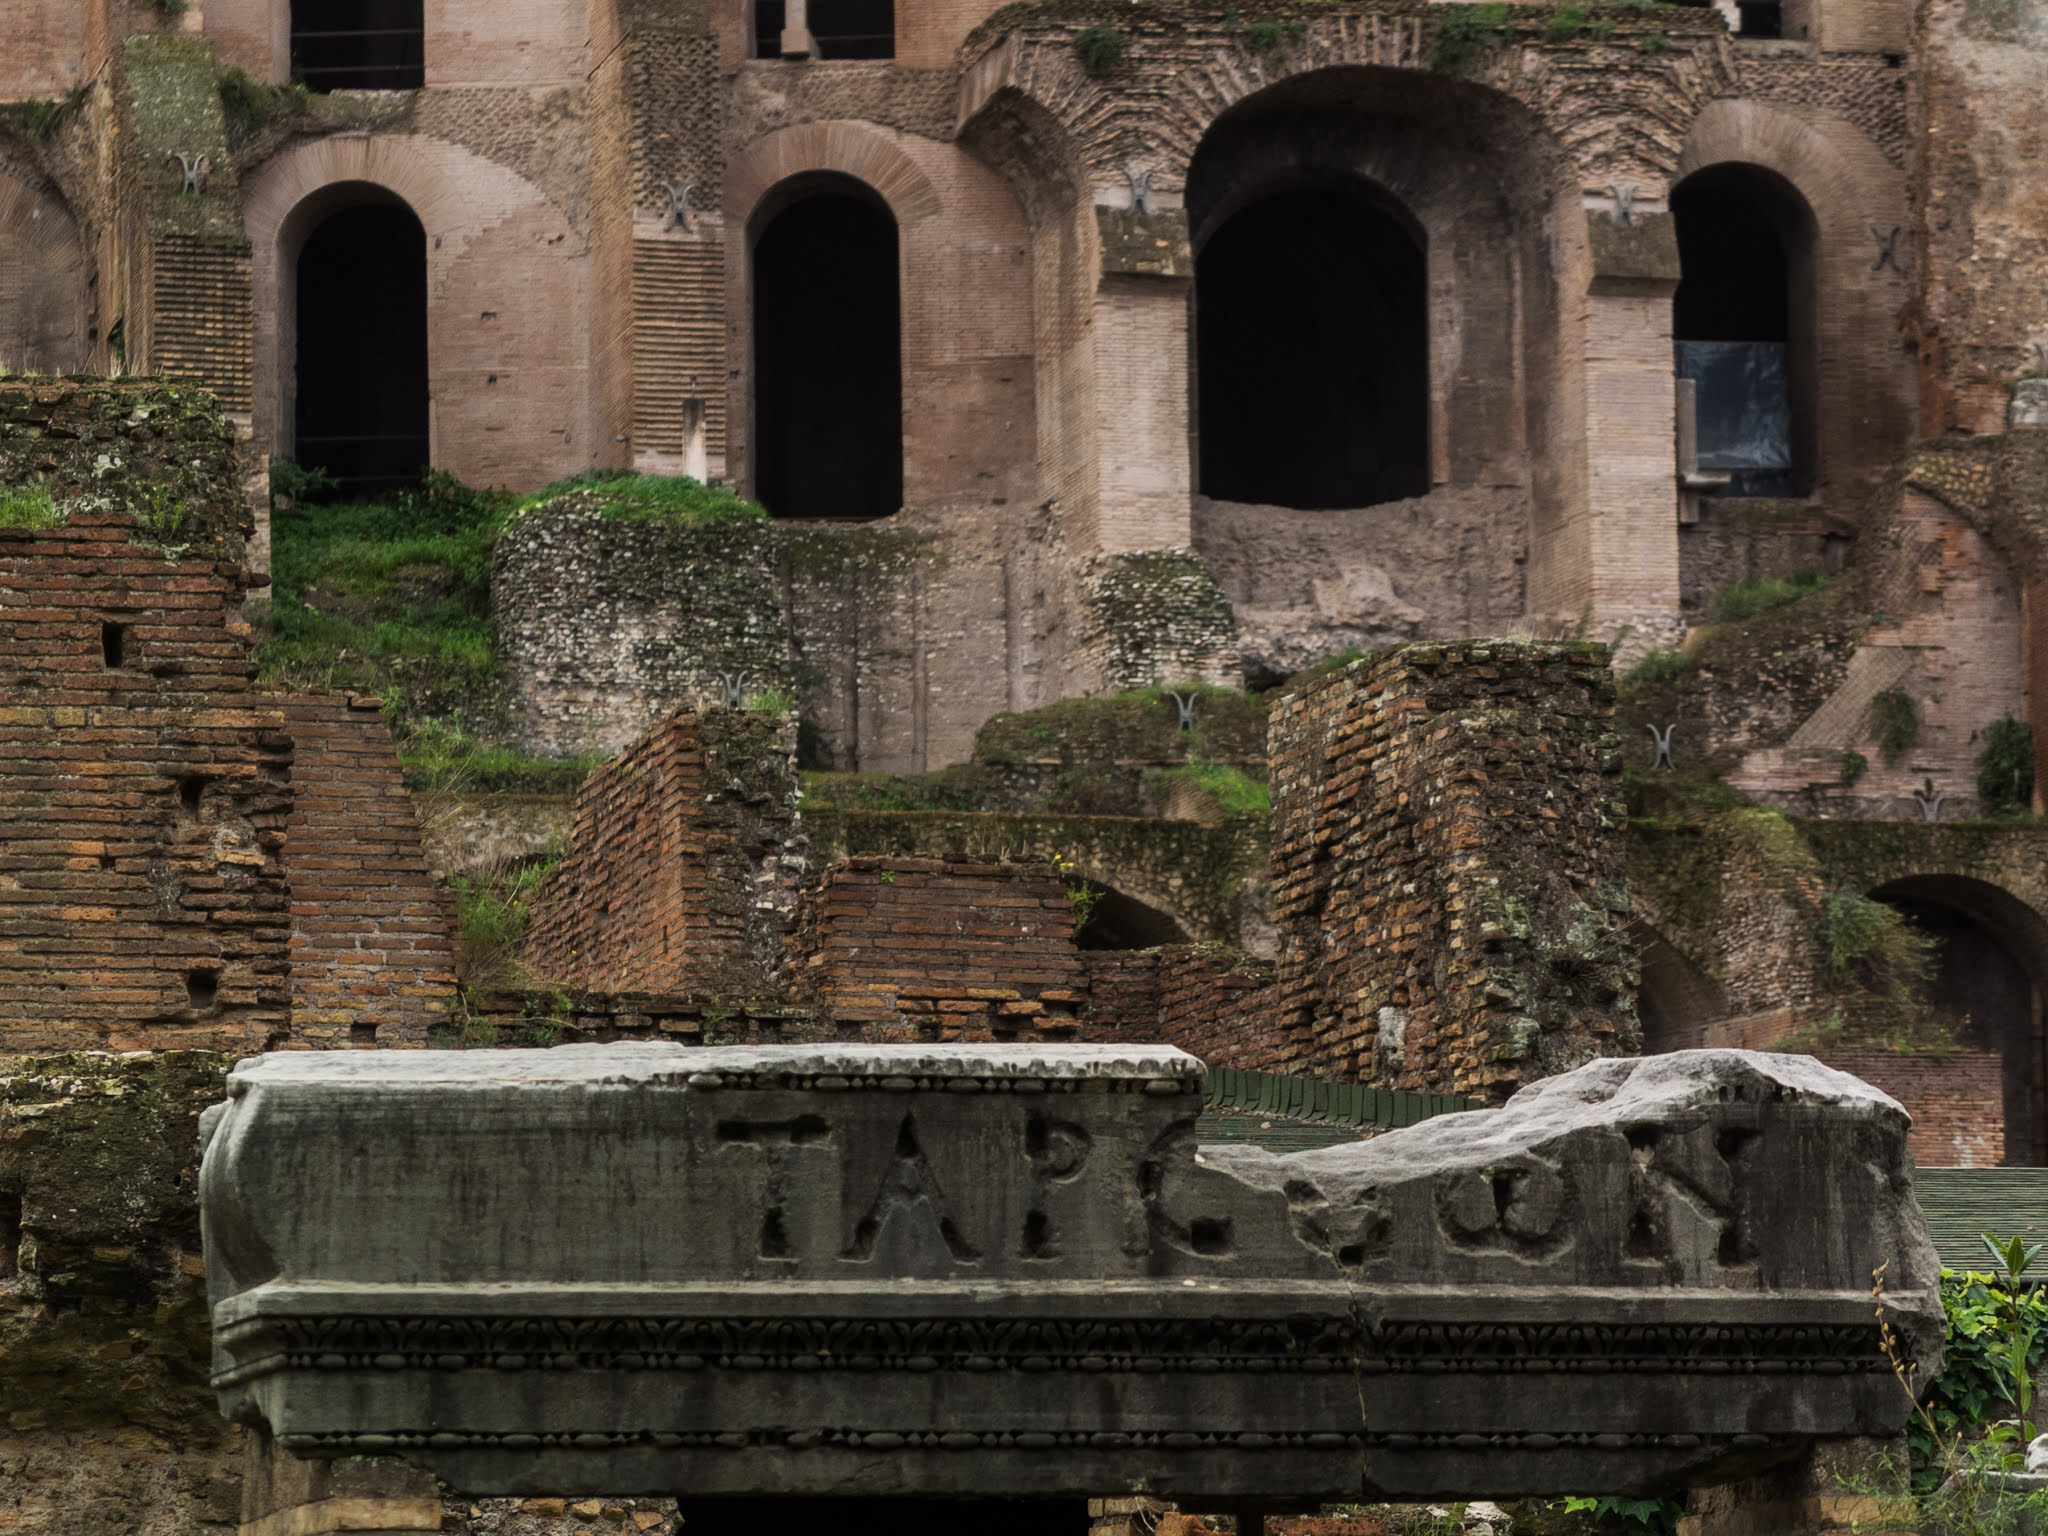 Close up of Domus Tiberiana ruins on Palatine Hill with letters engraved in stone in the foreground.